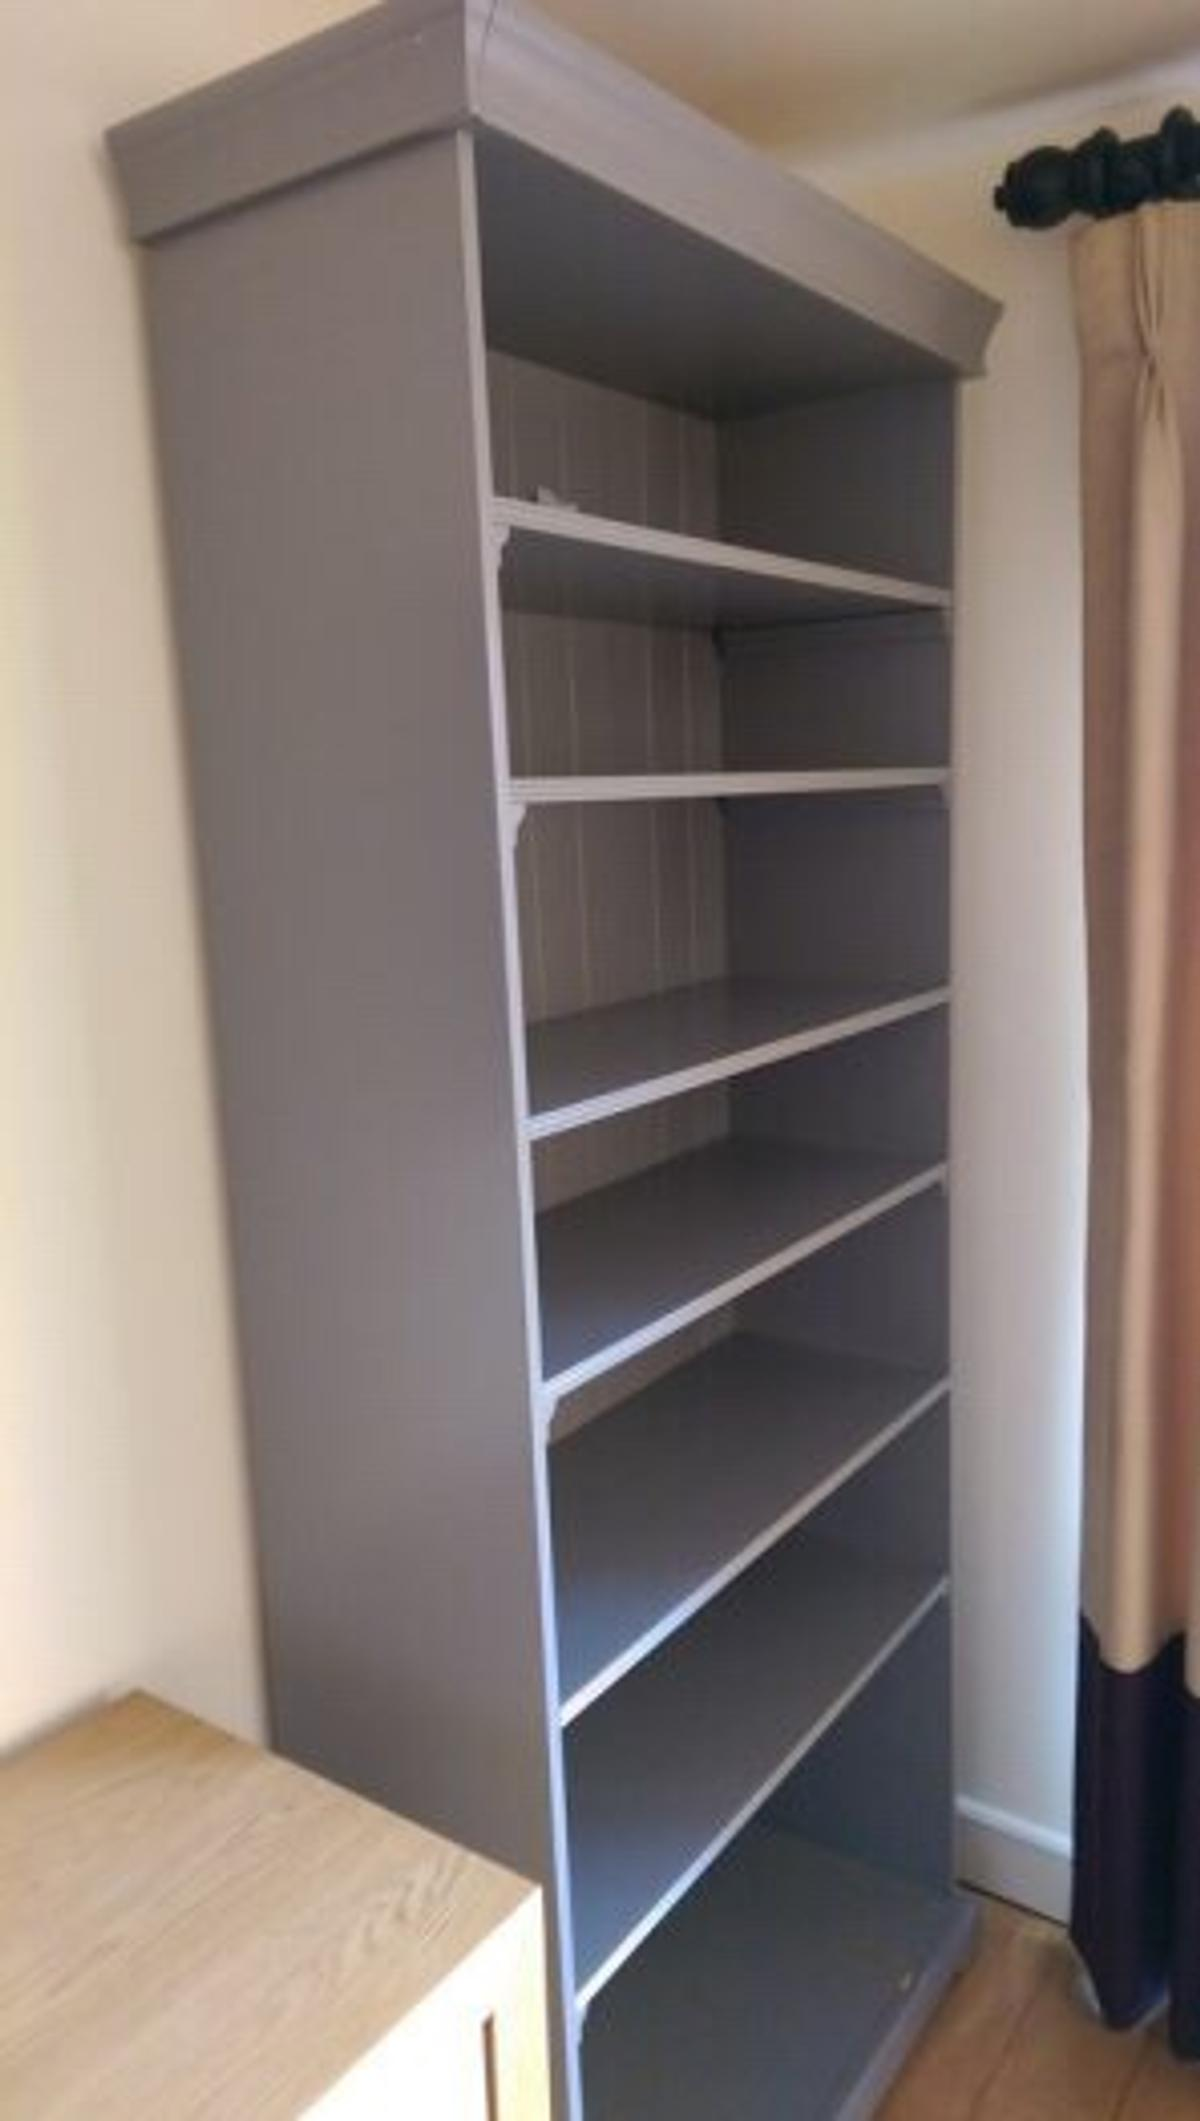 Ikea Liatorp Bookcase In Grey